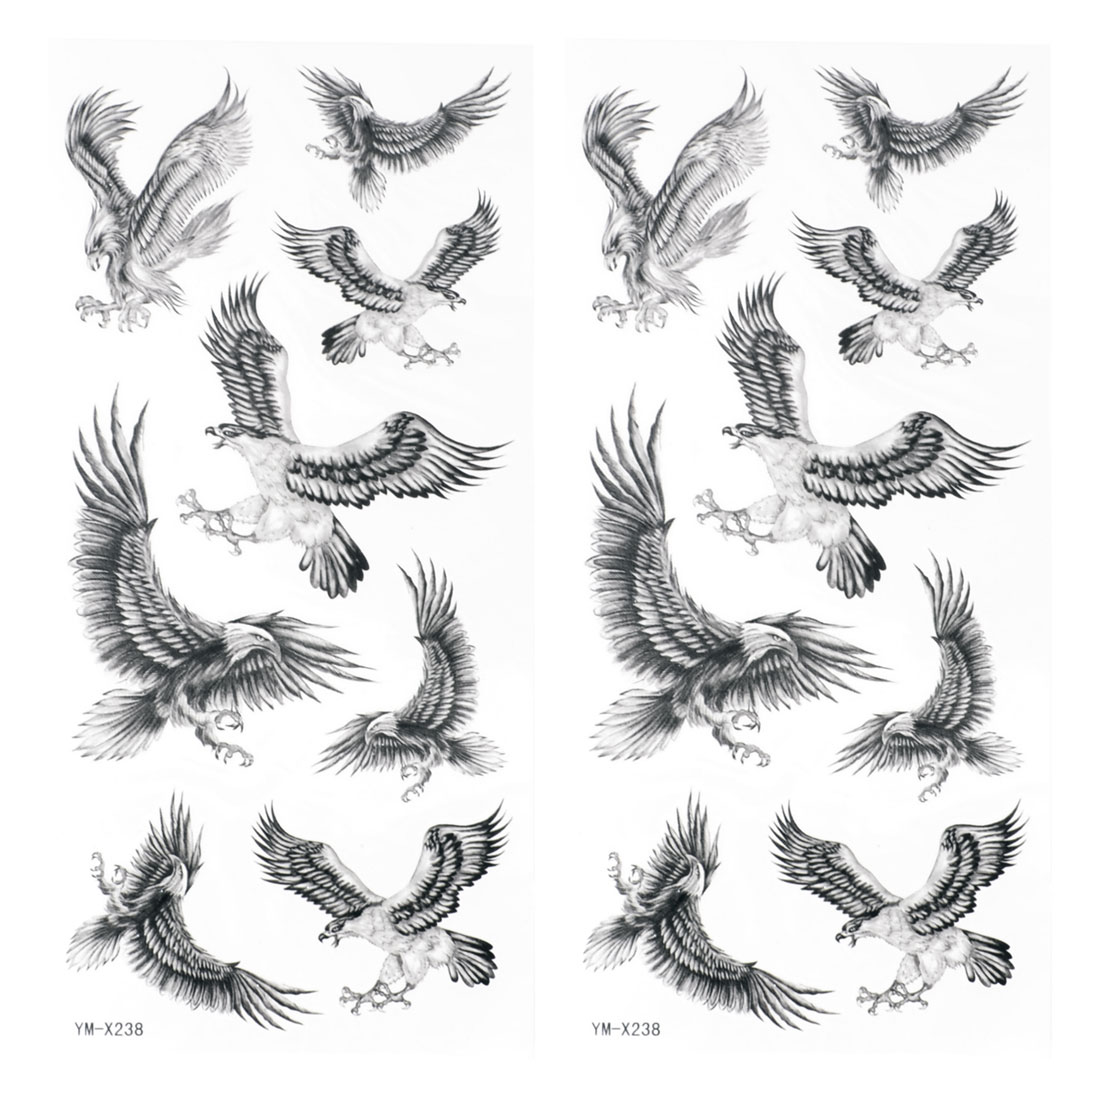 Black Eagle Pattern Waterproof Temporary Tattoo Transfer Sticker 2 Pcs